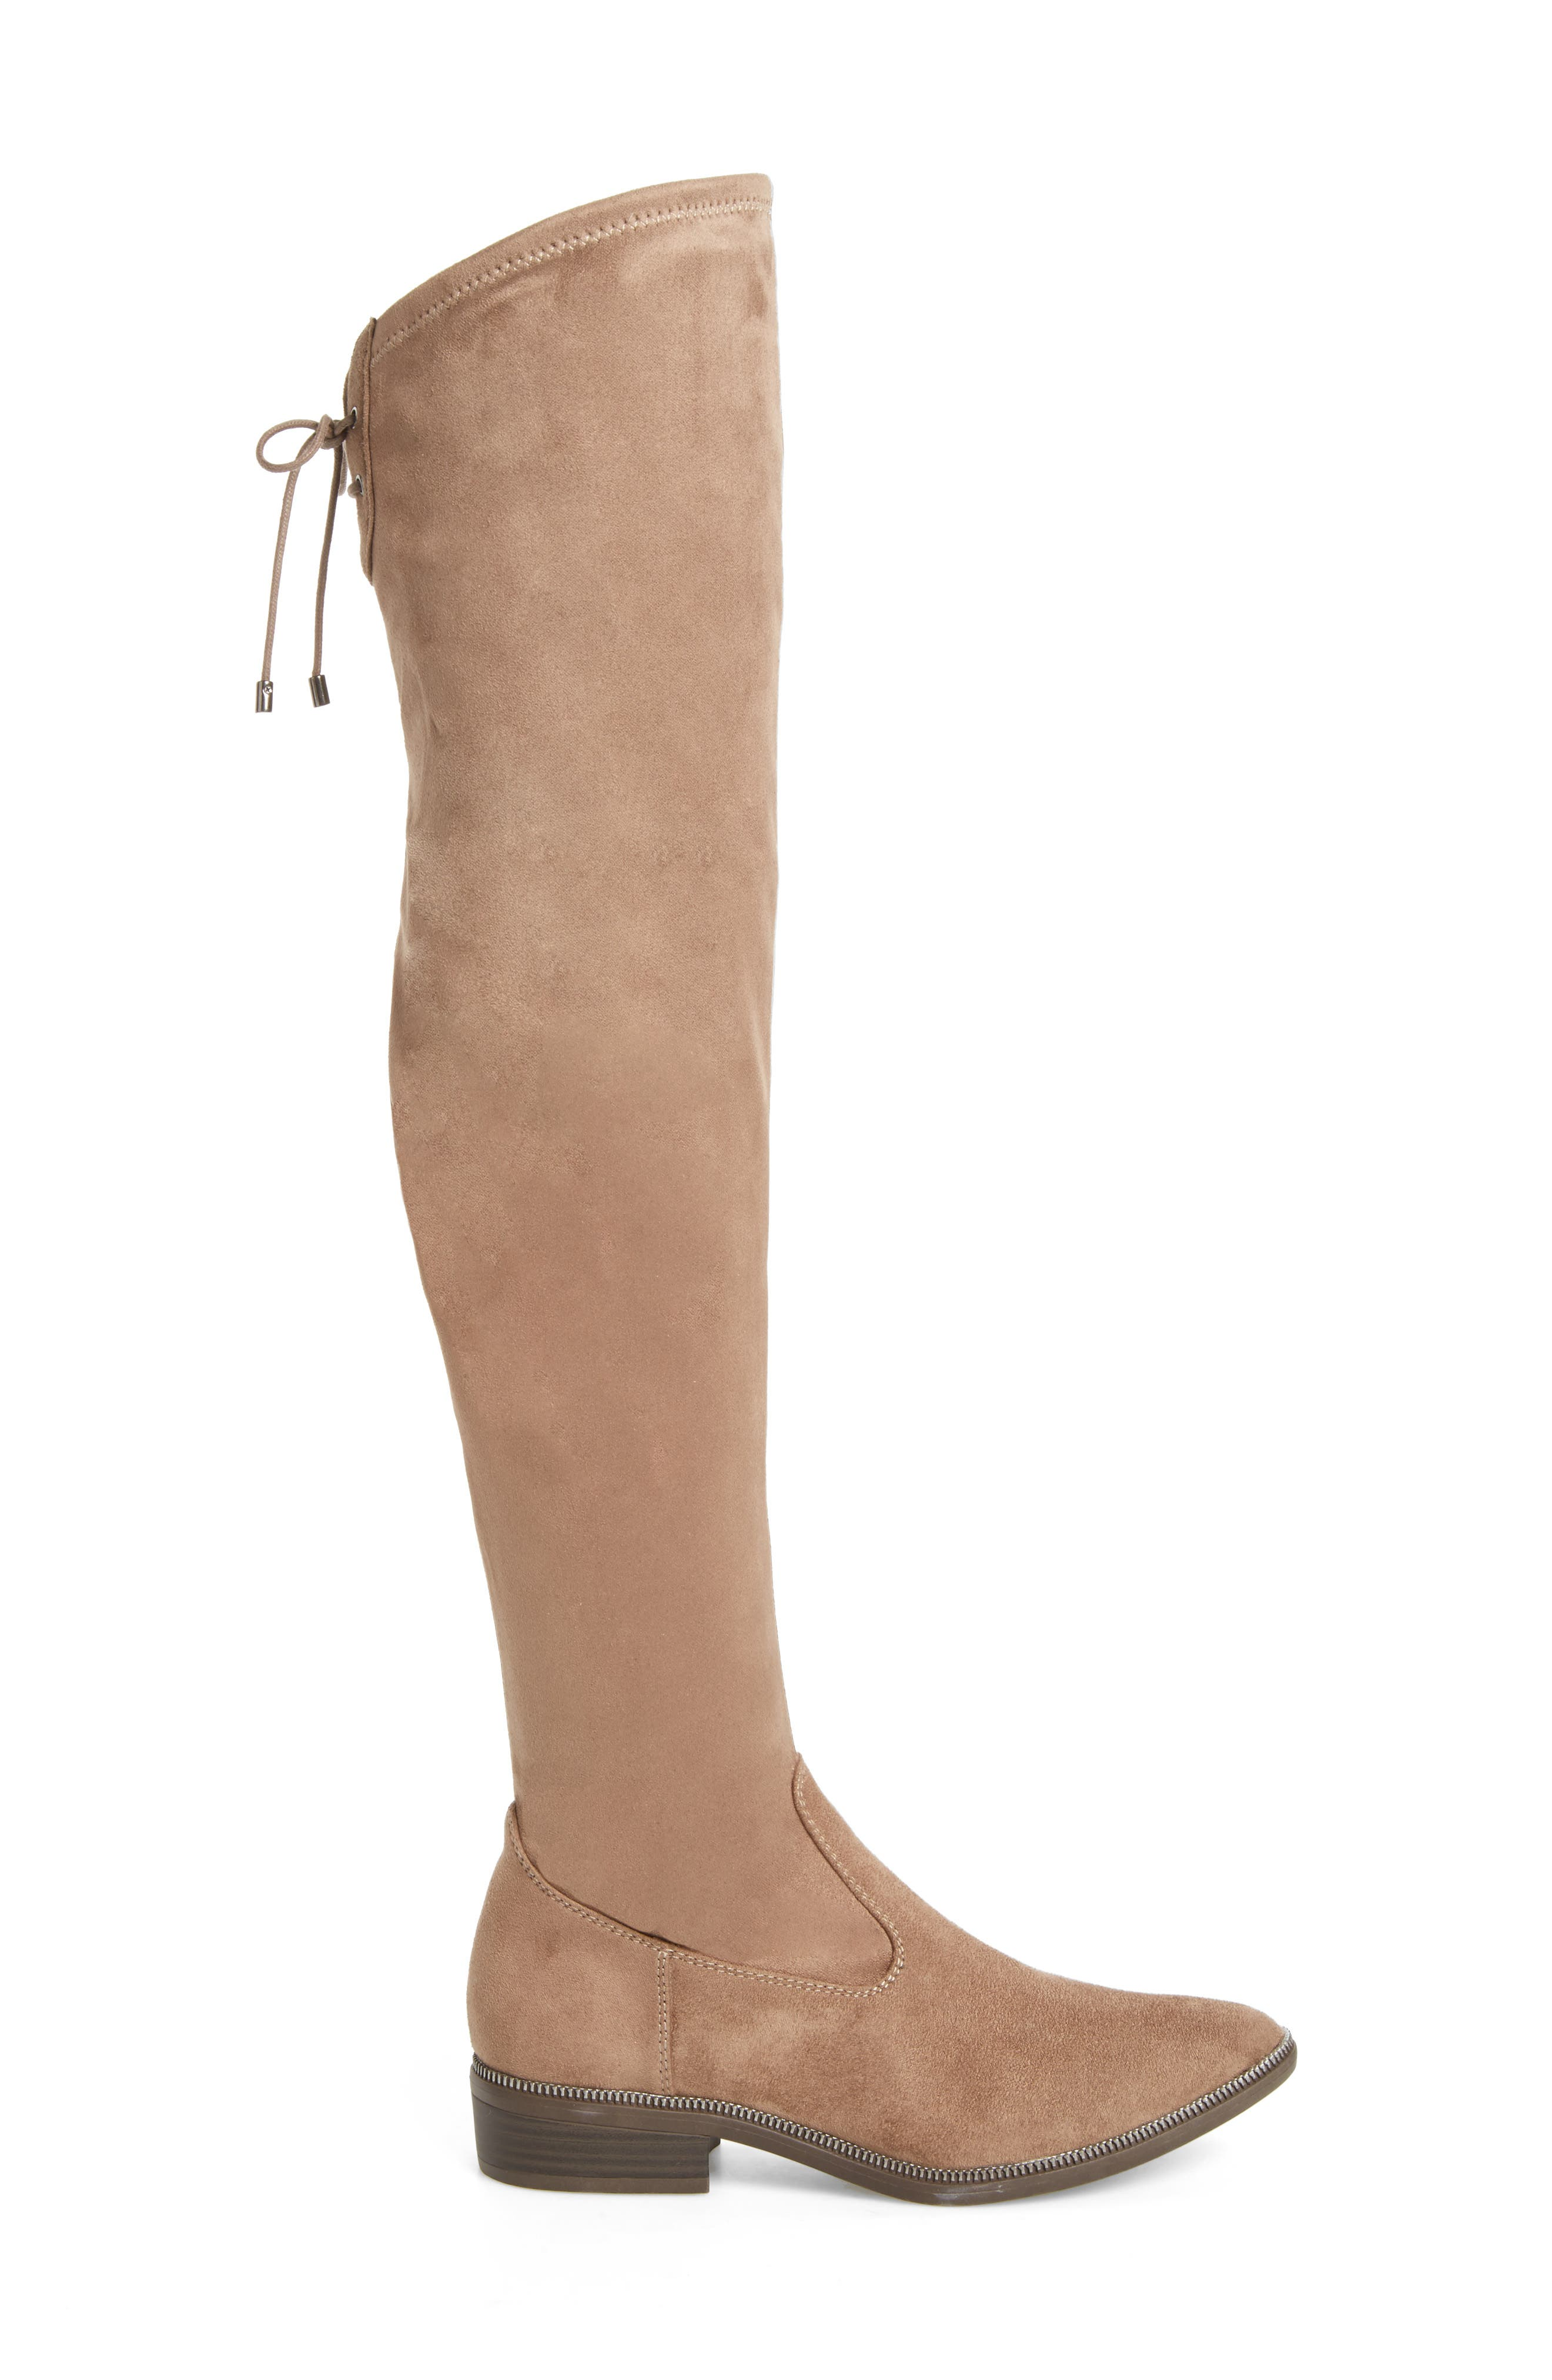 Phanie Over the Knee Stretch Boot,                             Alternate thumbnail 3, color,                             Dune Fabric